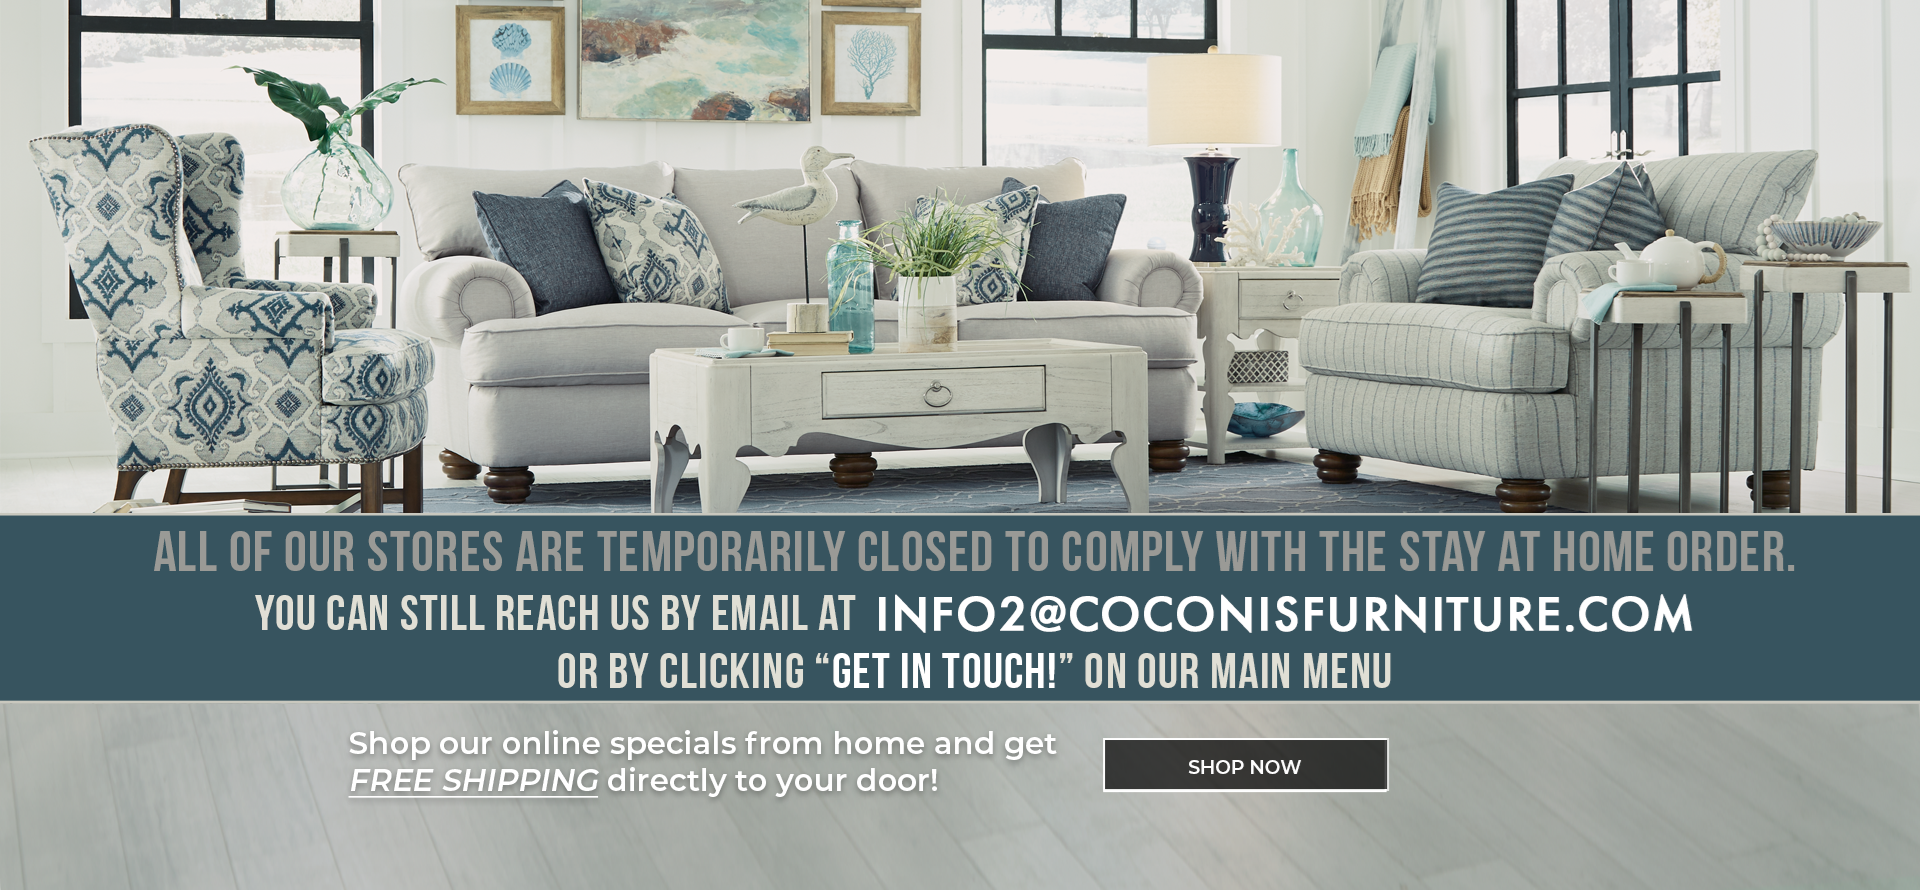 """All of our stores are temporarily closed to comply with the stay at home order. You can still reach us by email at info2@coconisfurniture.com or by clicking """"get in touch"""" on our main menu."""